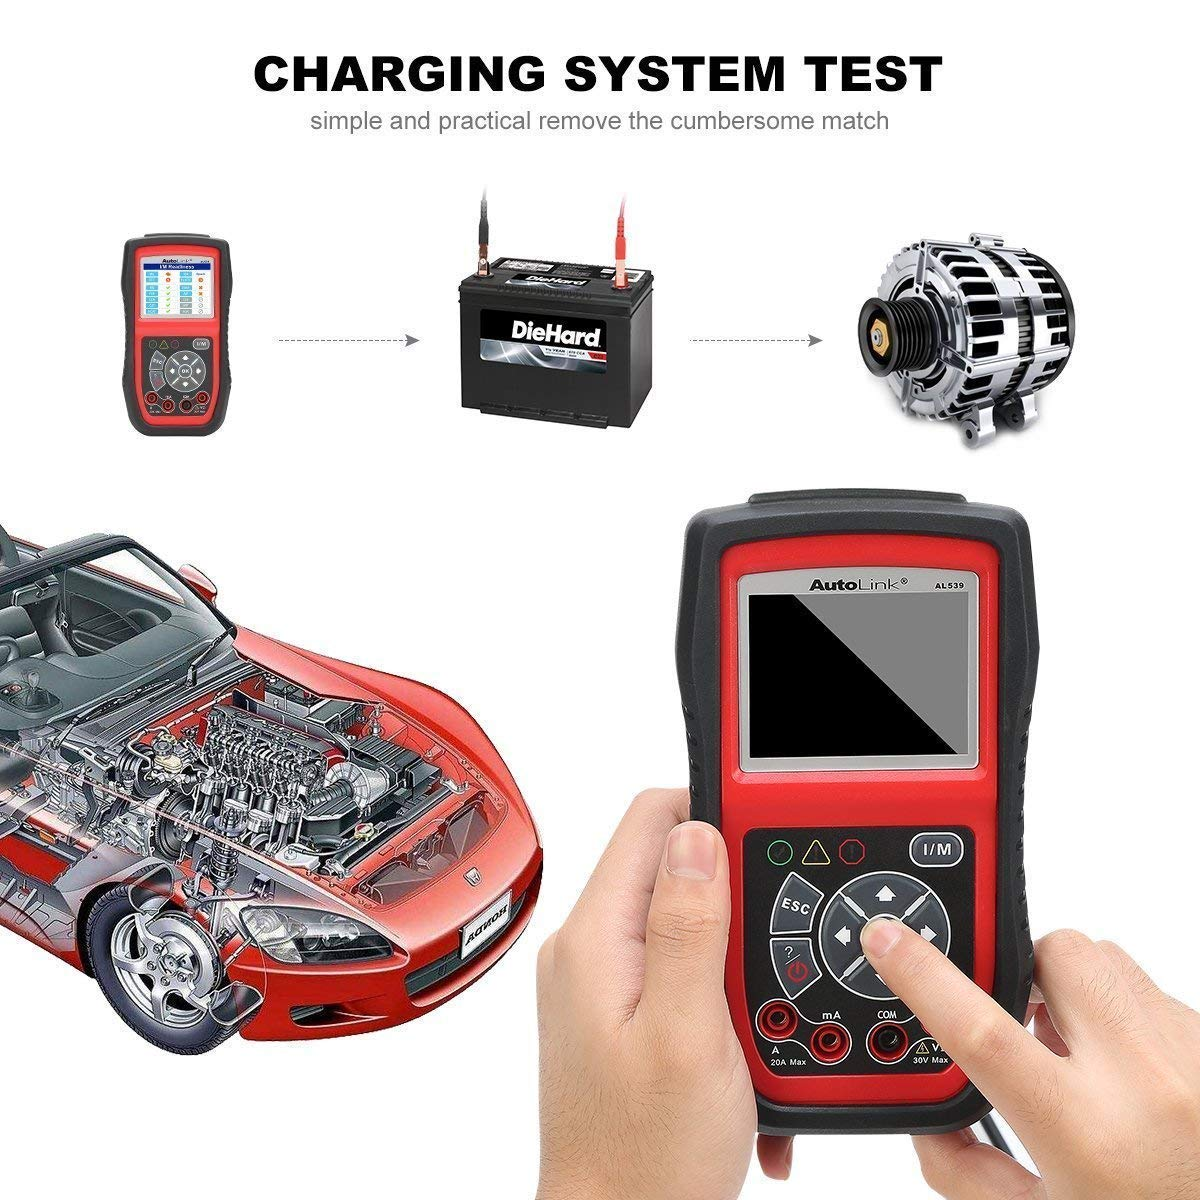 Autel AutoLink AL539B OBDII Code Reader and Electrical Tool Supports Circuit Starting Charging System AL539 + Battery Test